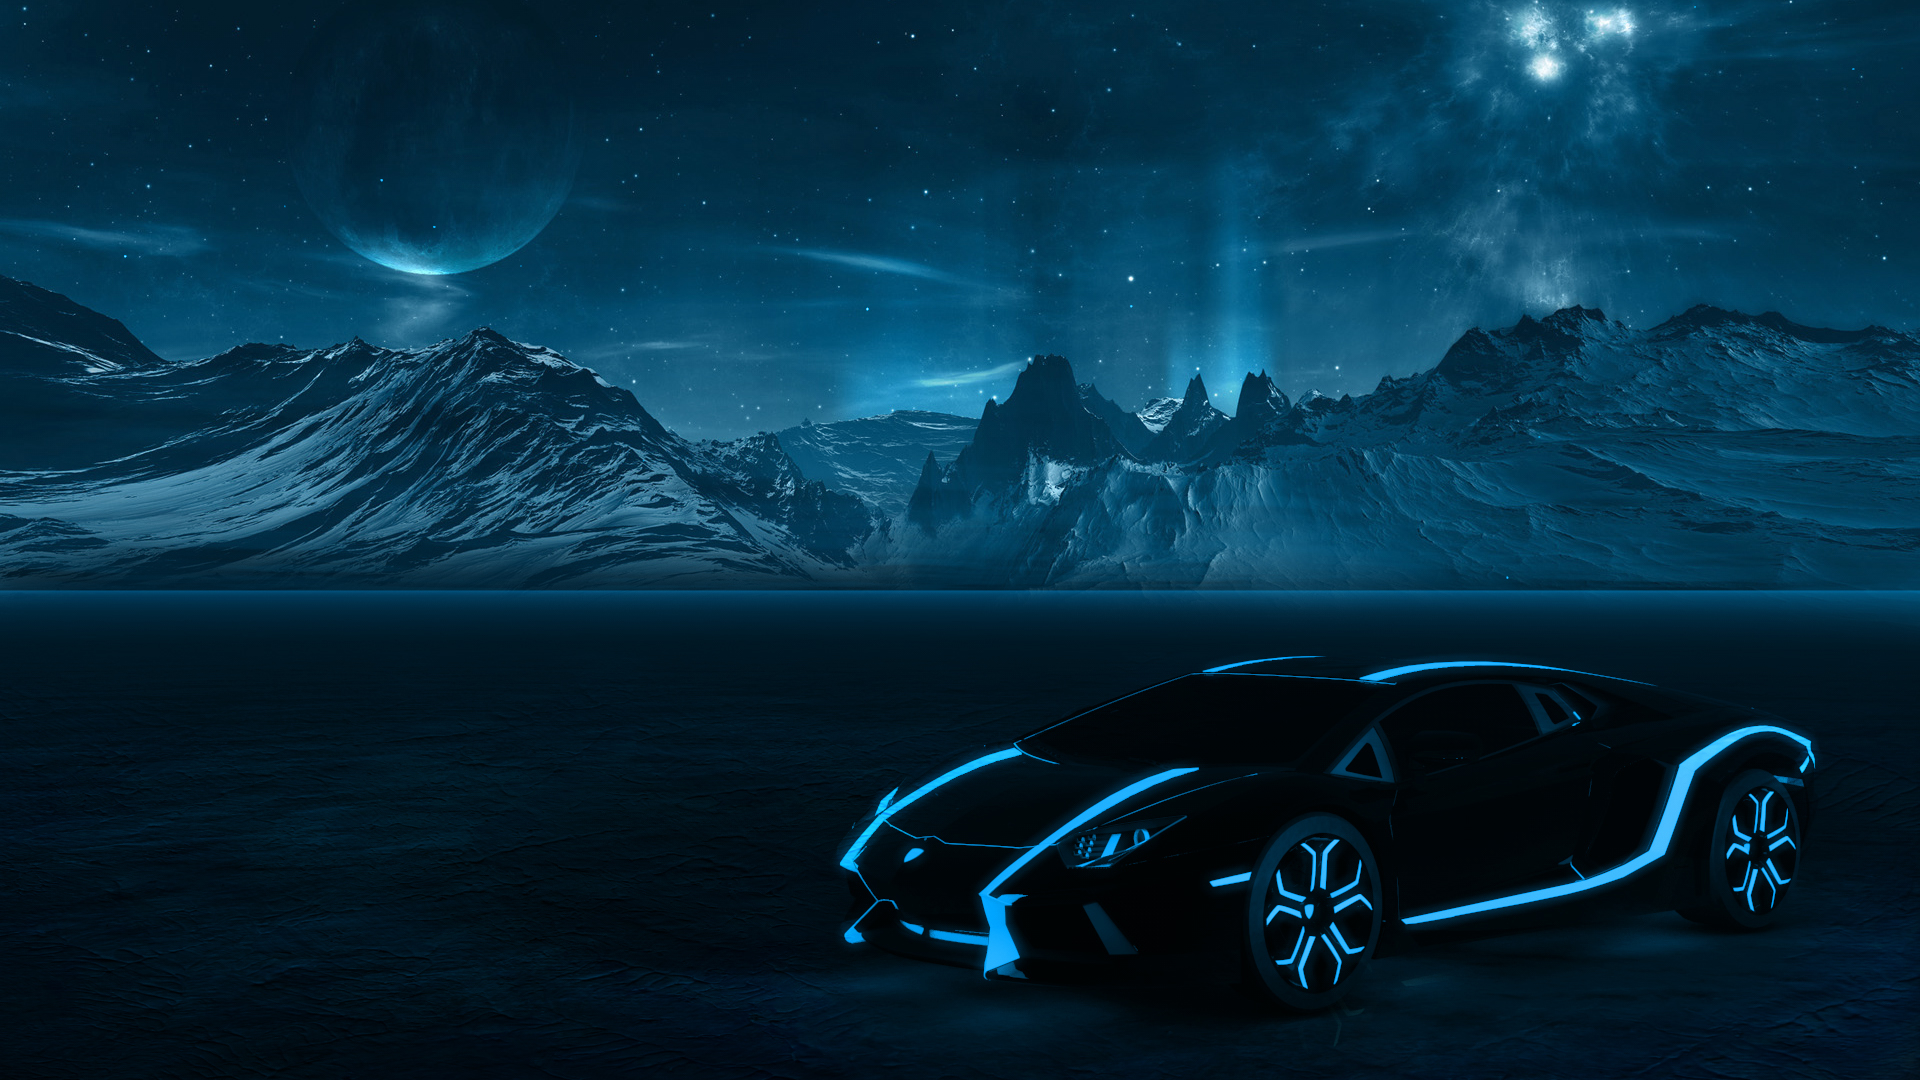 tron lamborghini aventador wallpapers images photos pictures backgrounds. Black Bedroom Furniture Sets. Home Design Ideas